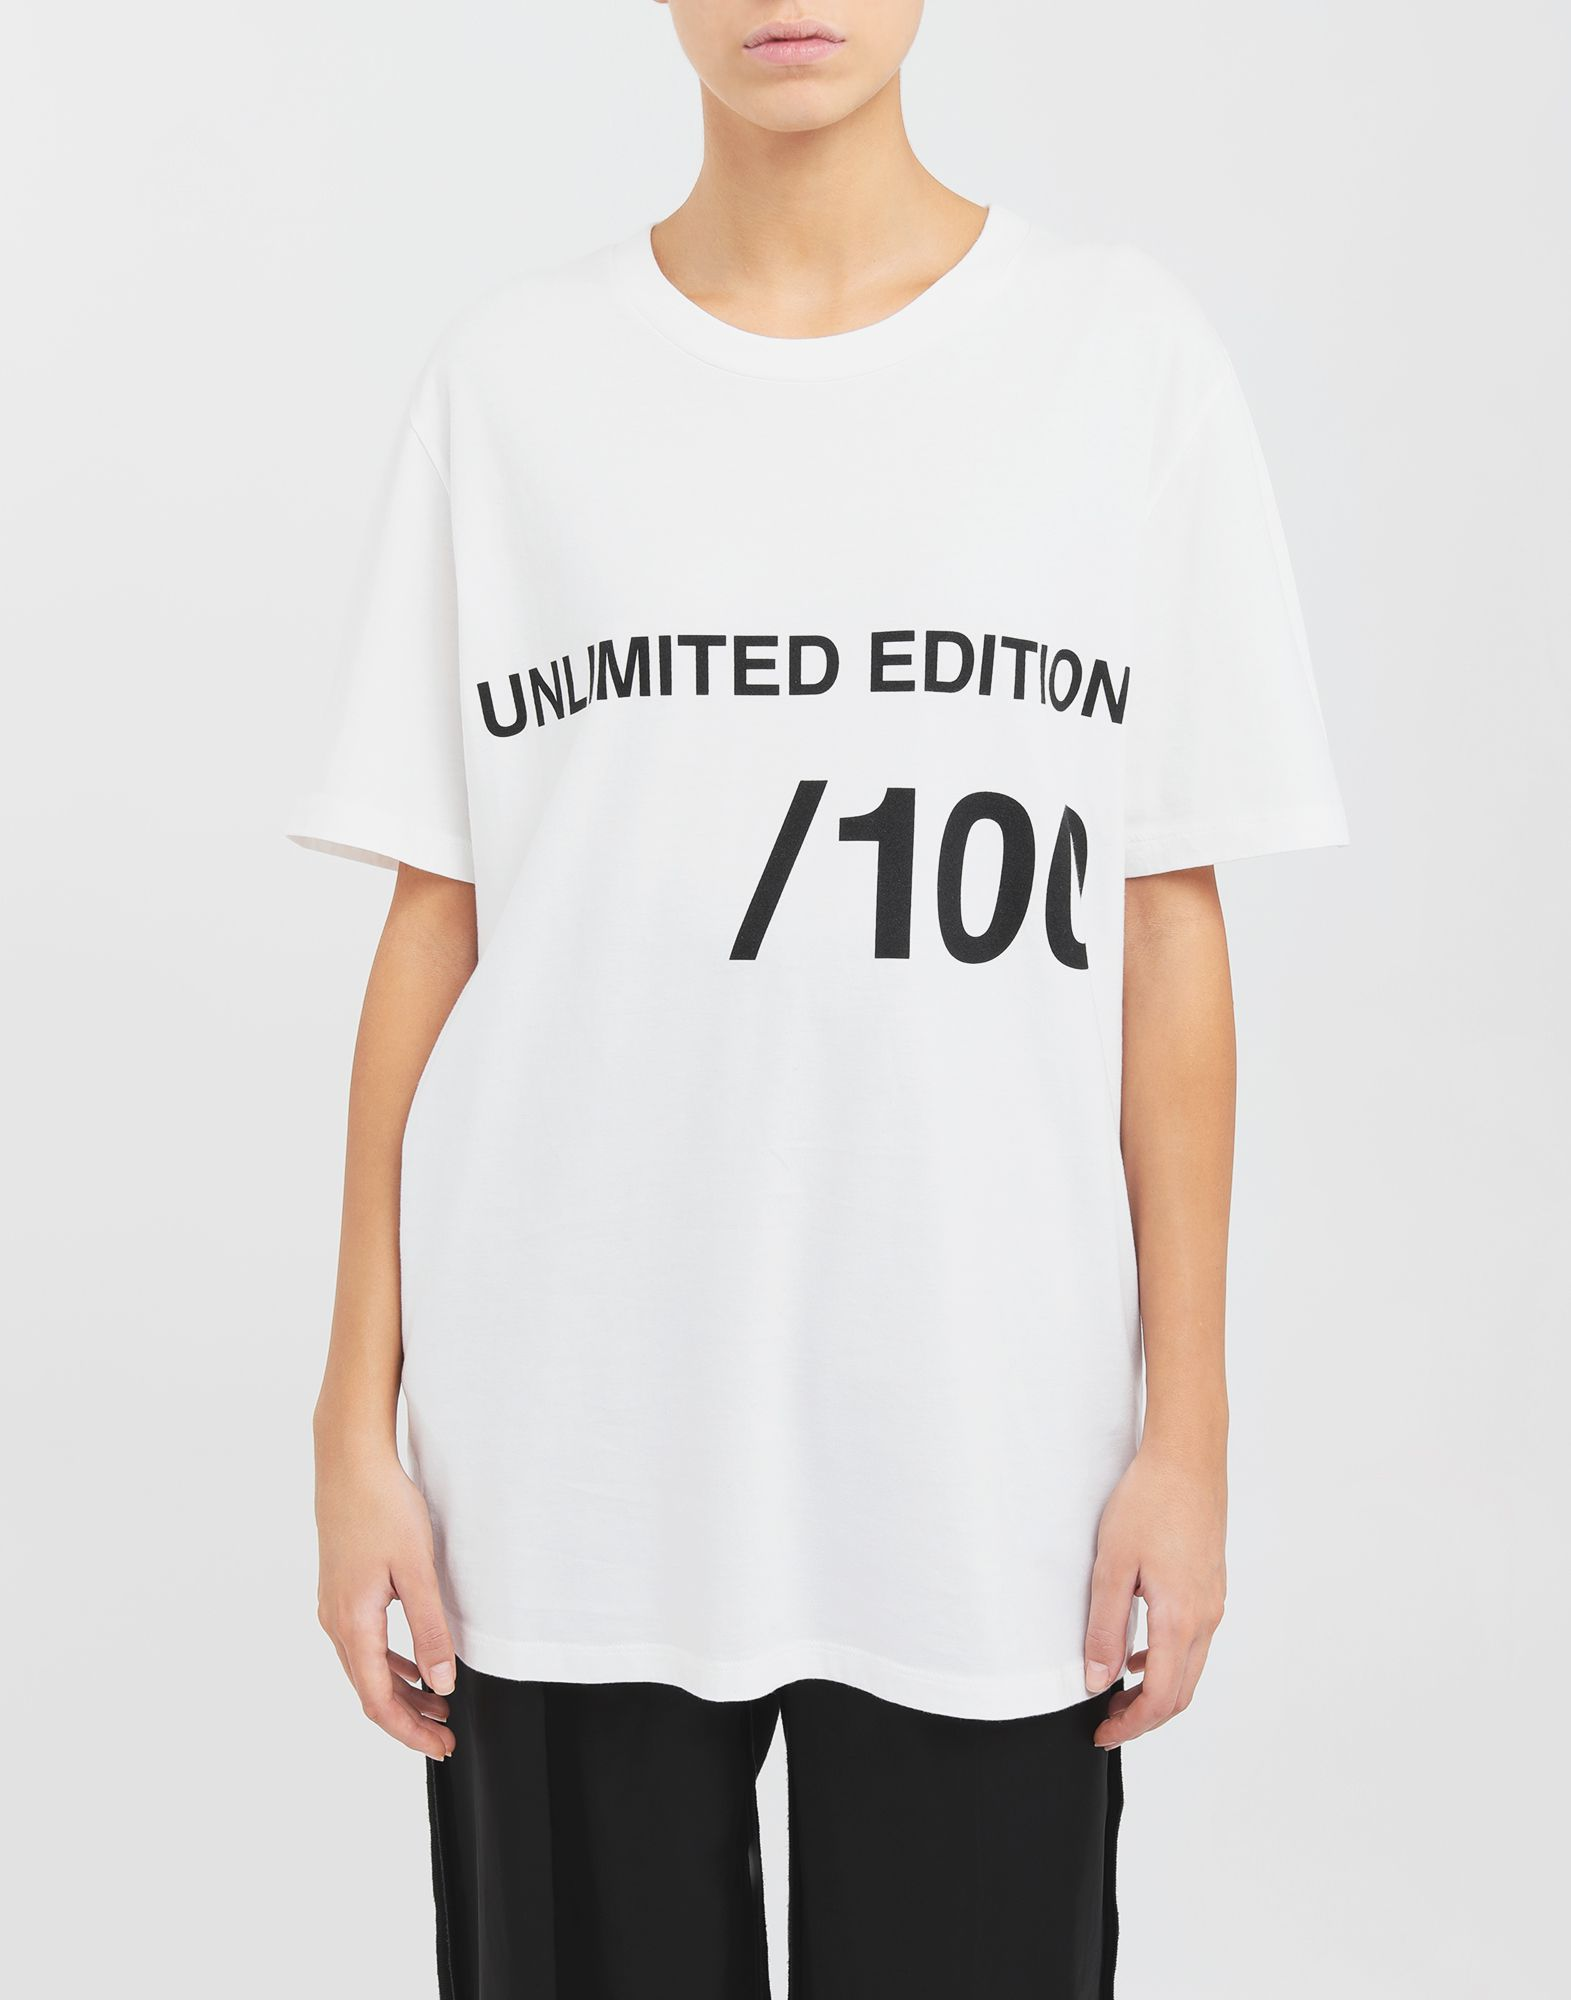 MM6 MAISON MARGIELA Unlimited Edition T-shirt Short sleeve t-shirt Woman r